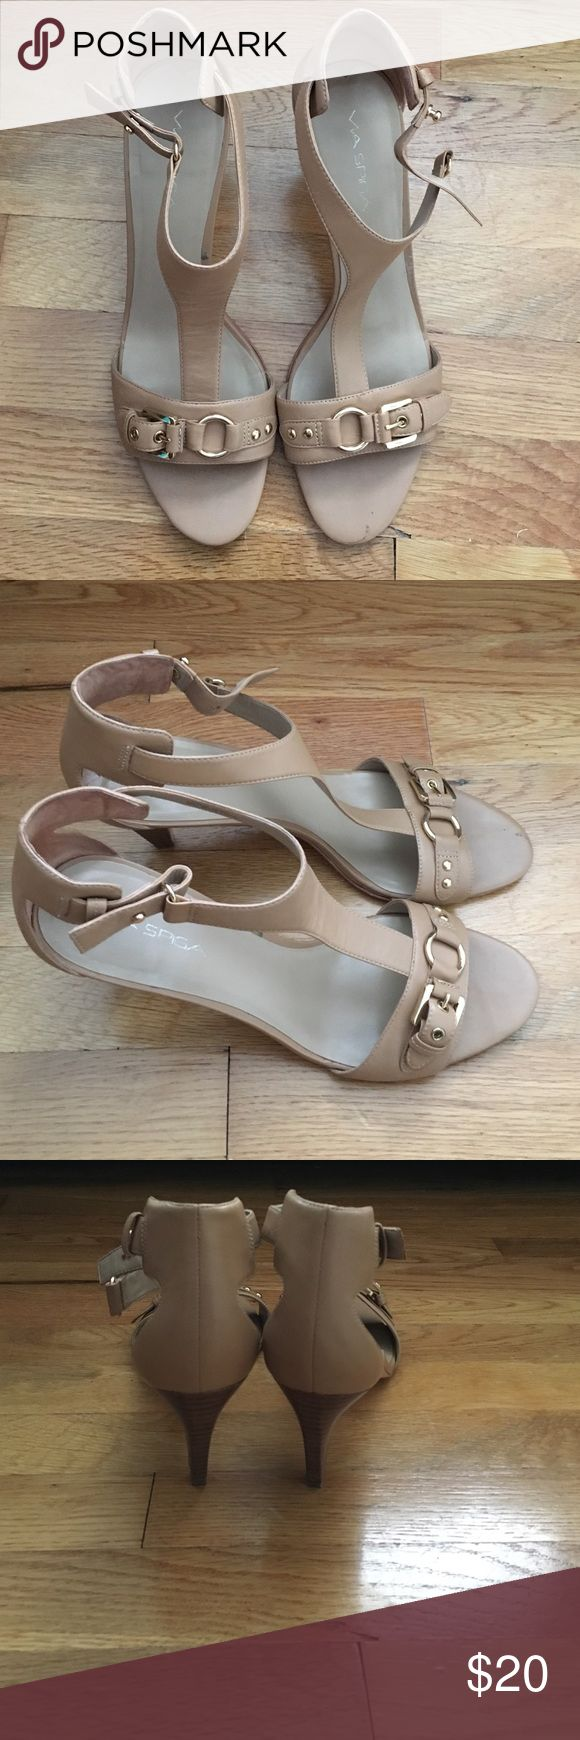 Dressy t strap sandals These are t strap sandals by Via Spiga. They run a little big and can fit a US size 11. Via Spiga Shoes Sandals